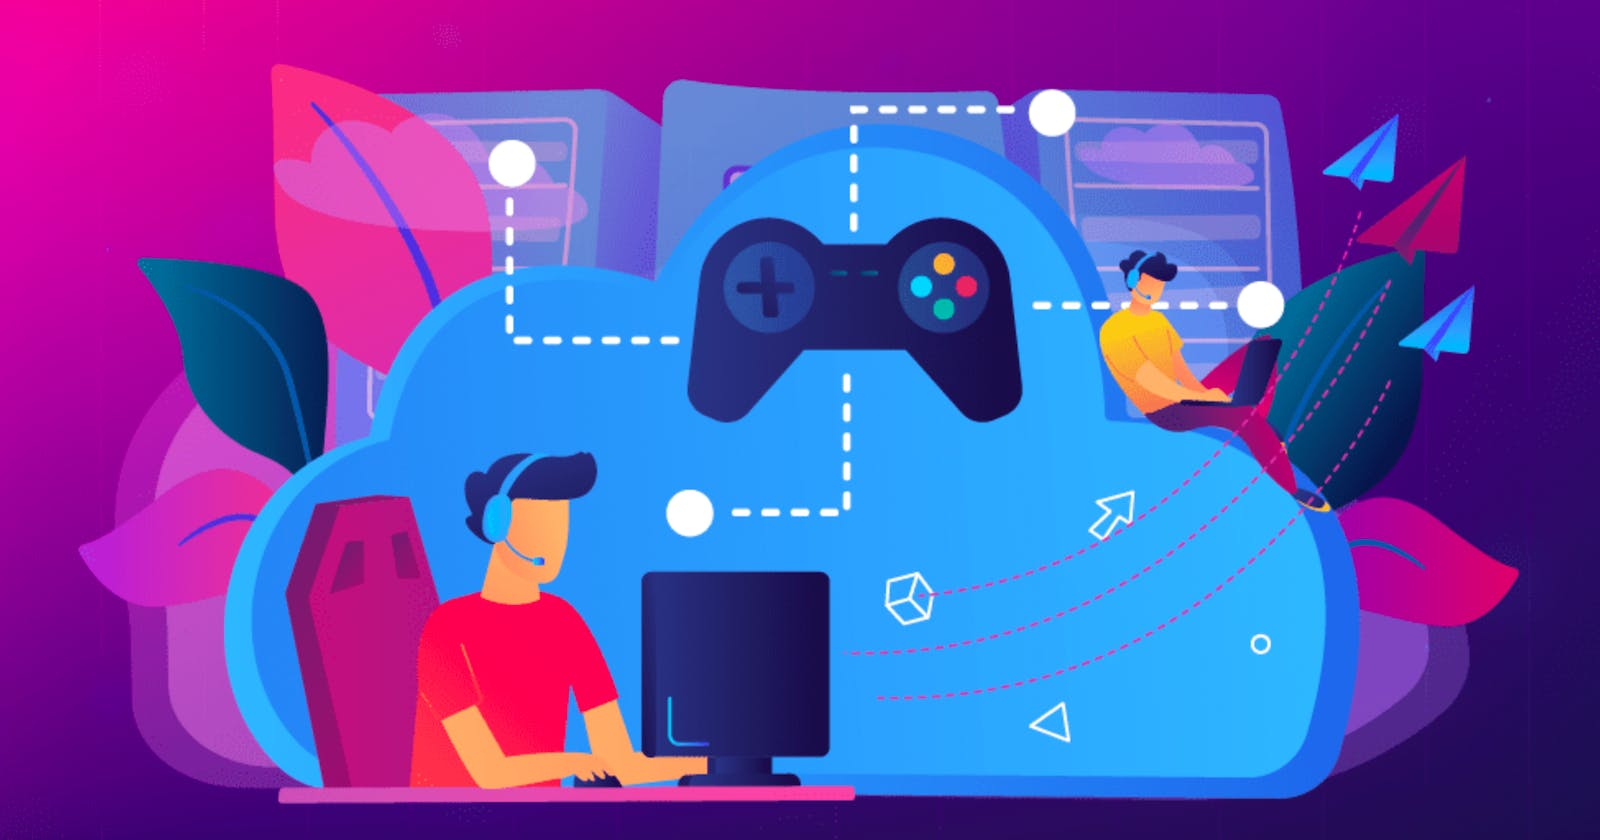 CLOUDGAMER01 - The Cloud Gamer project